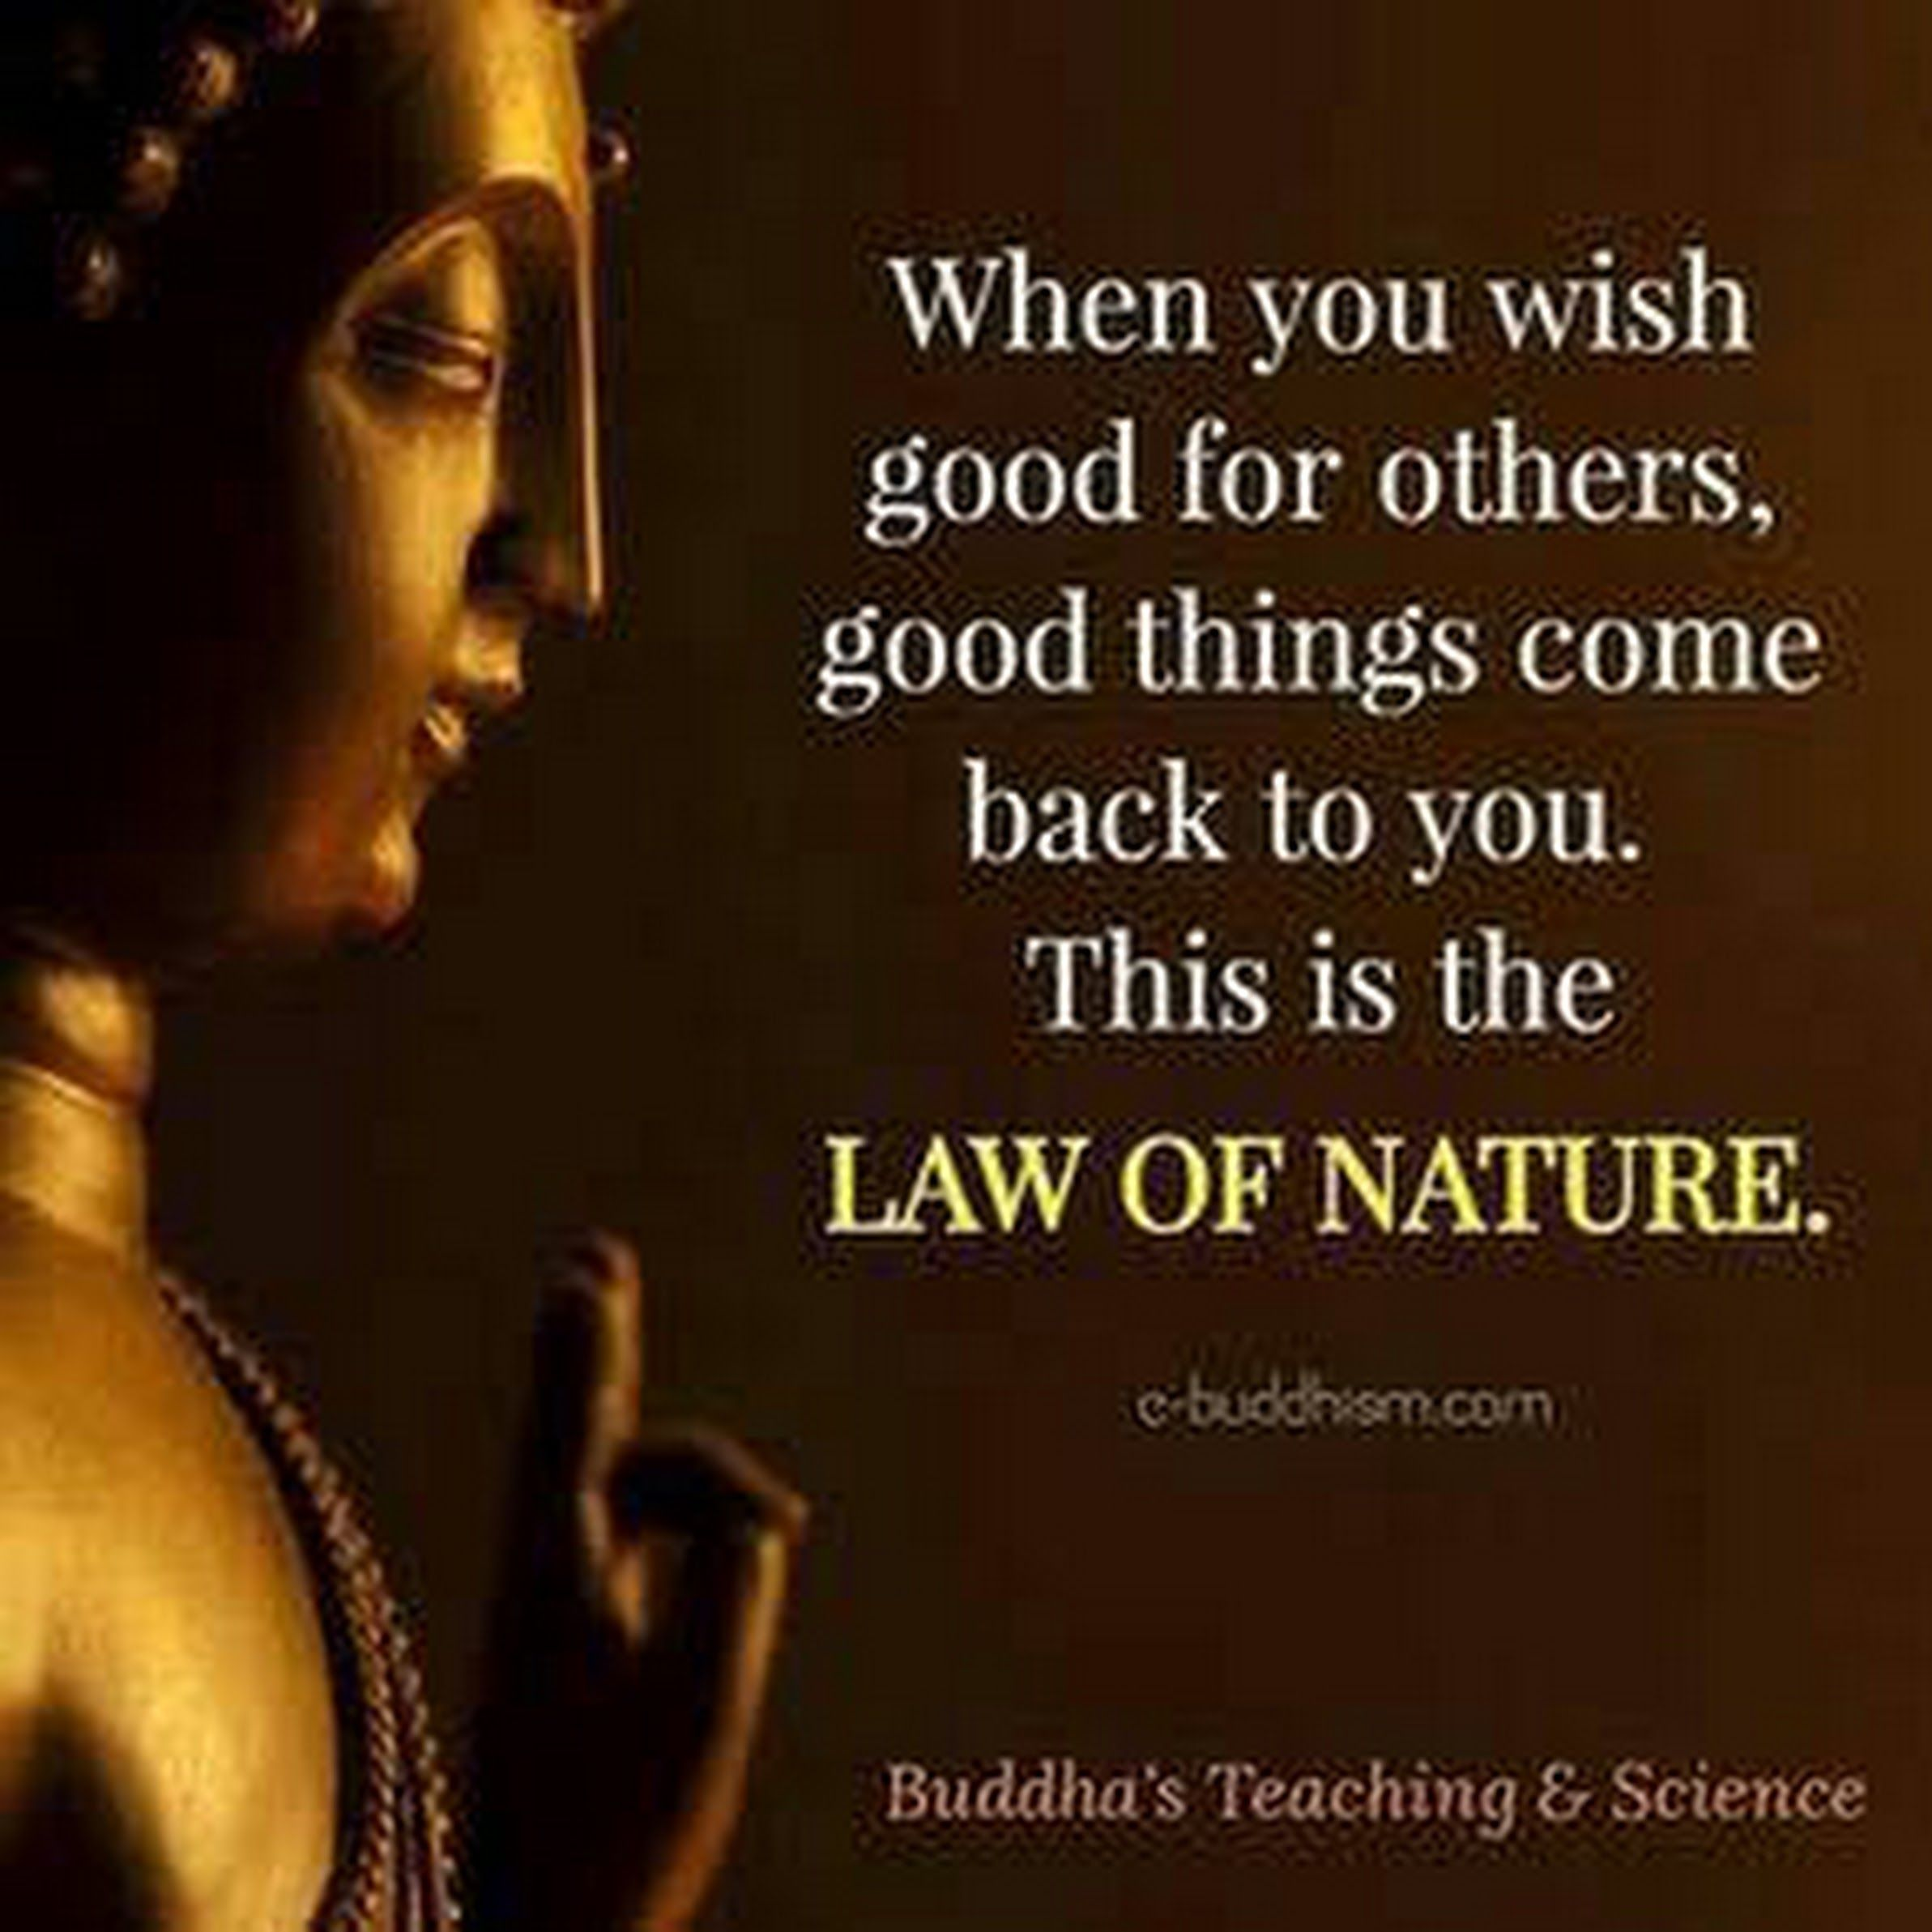 Sign in | Buddhist quotes, Buddha quote, Buddha quotes inspirational